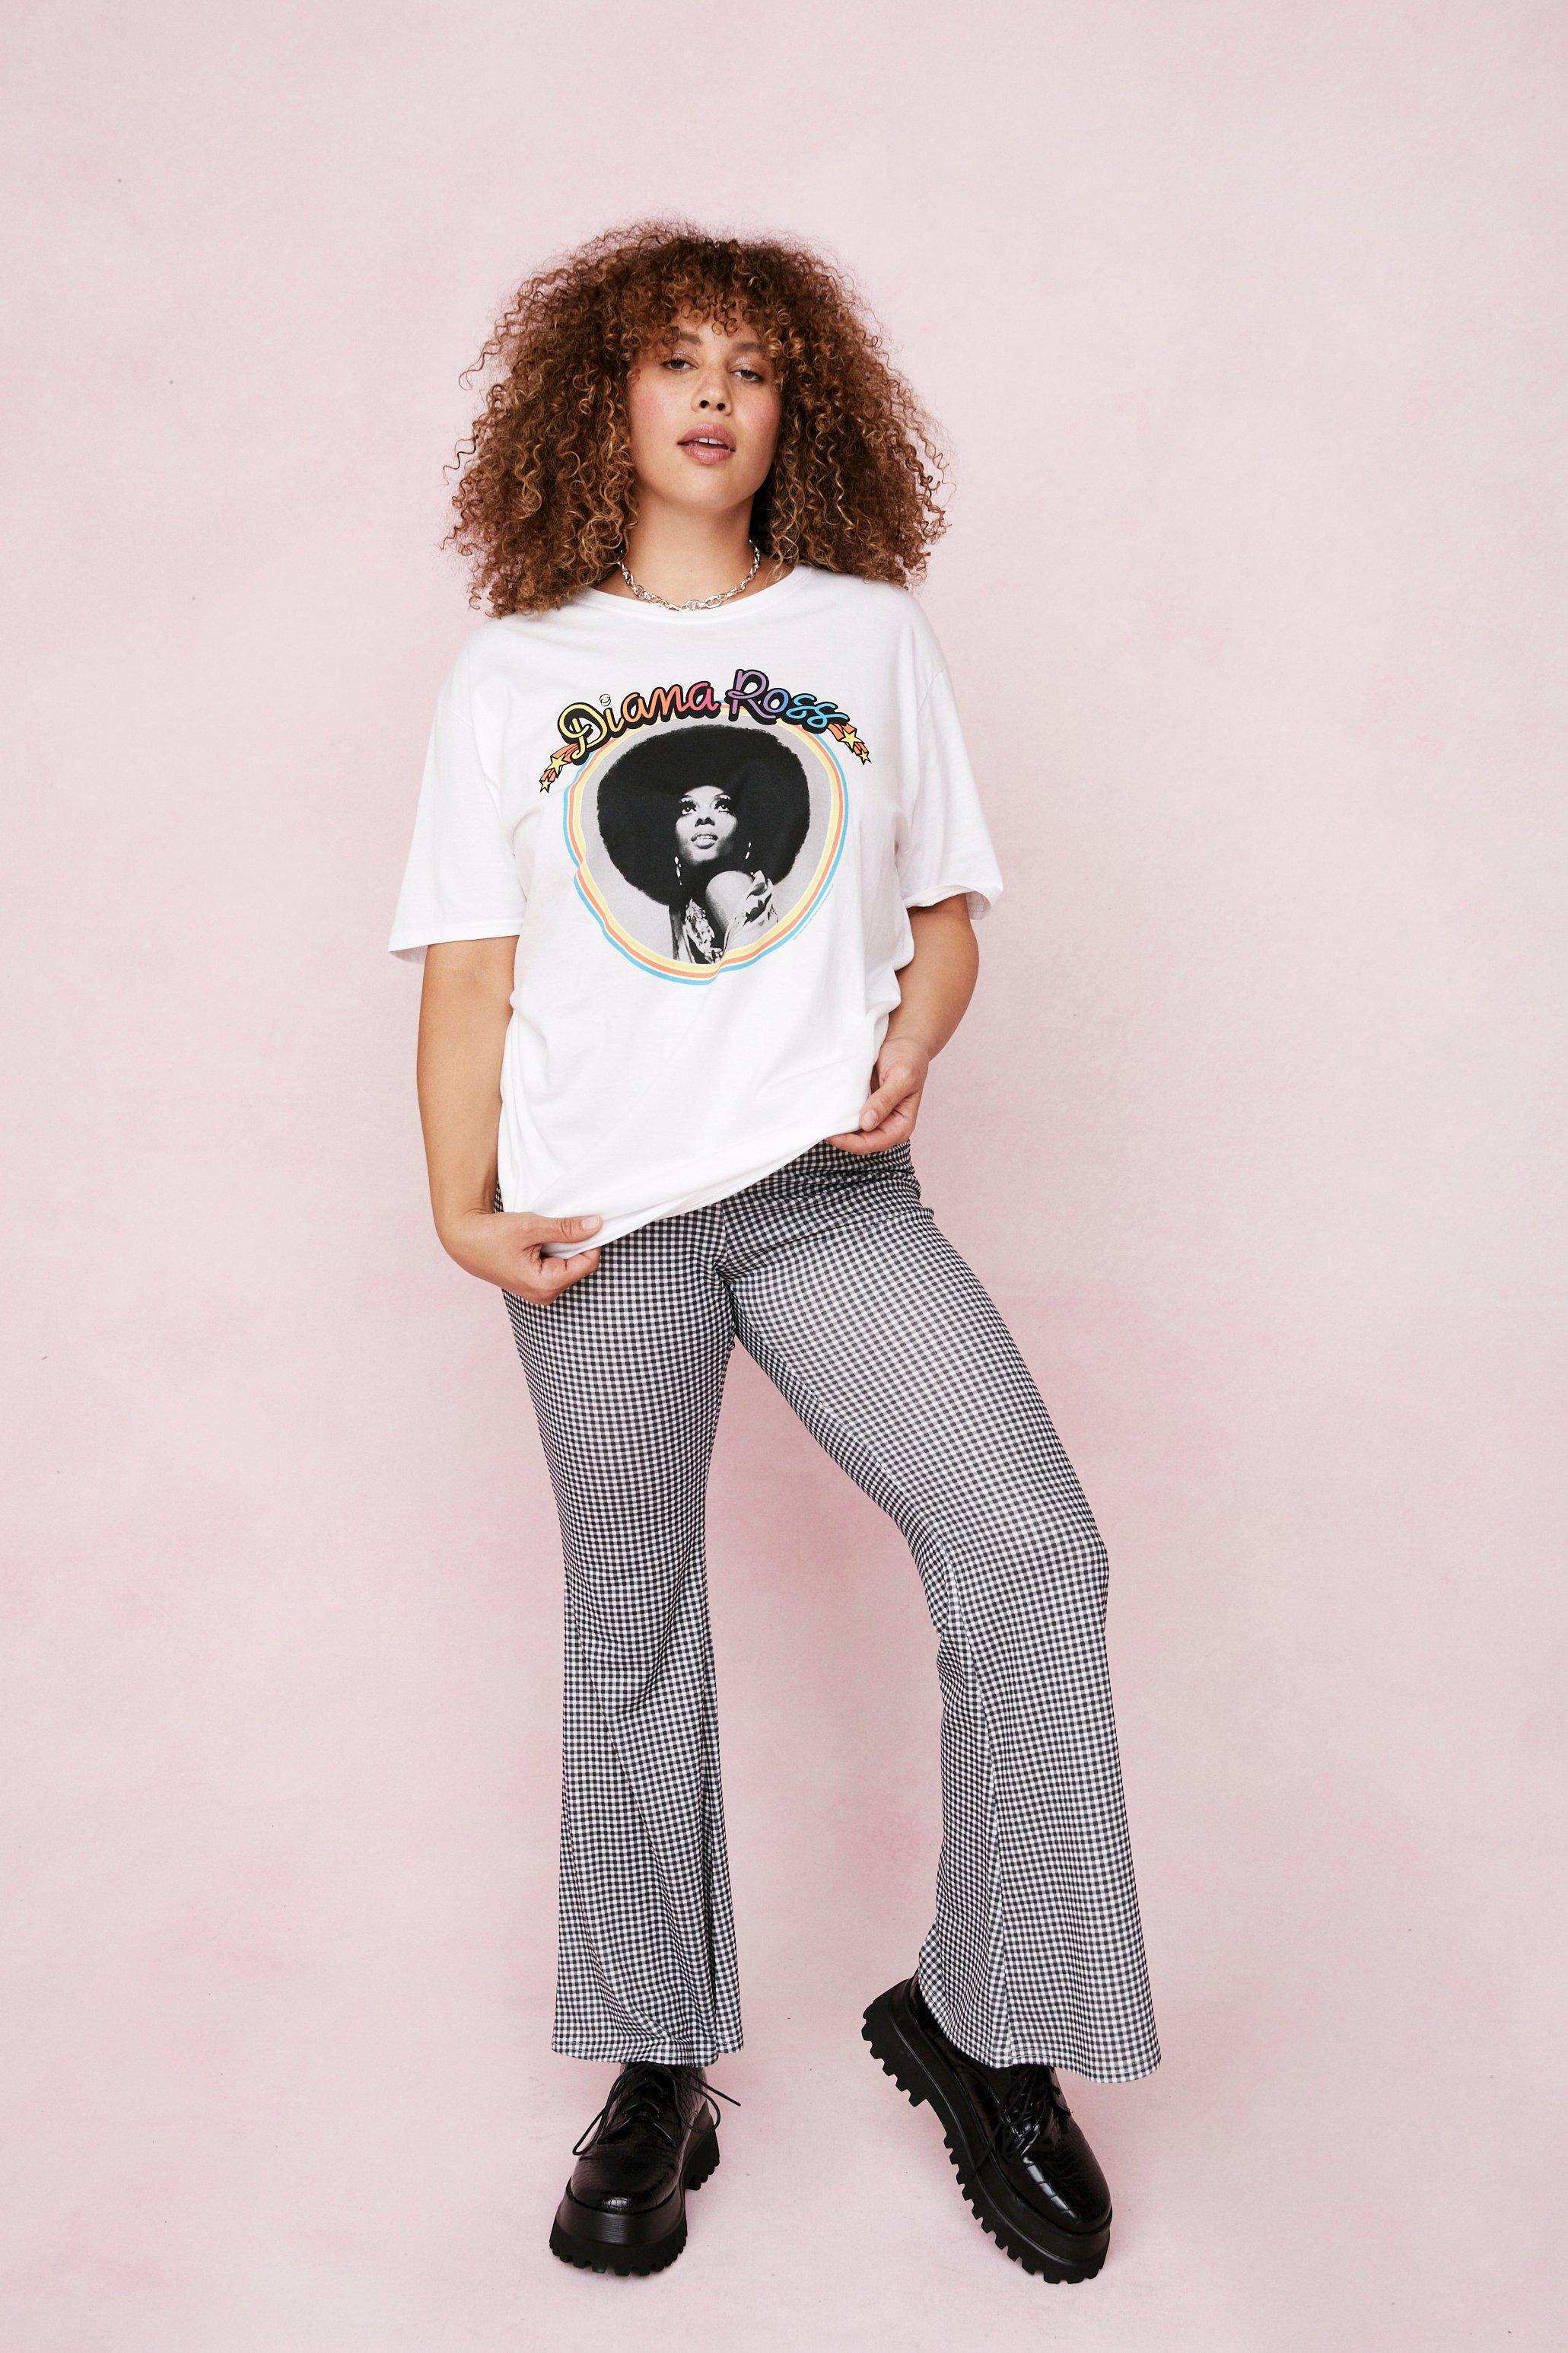 Diana Ross Plus Size Graphic Band T-Shirt 17